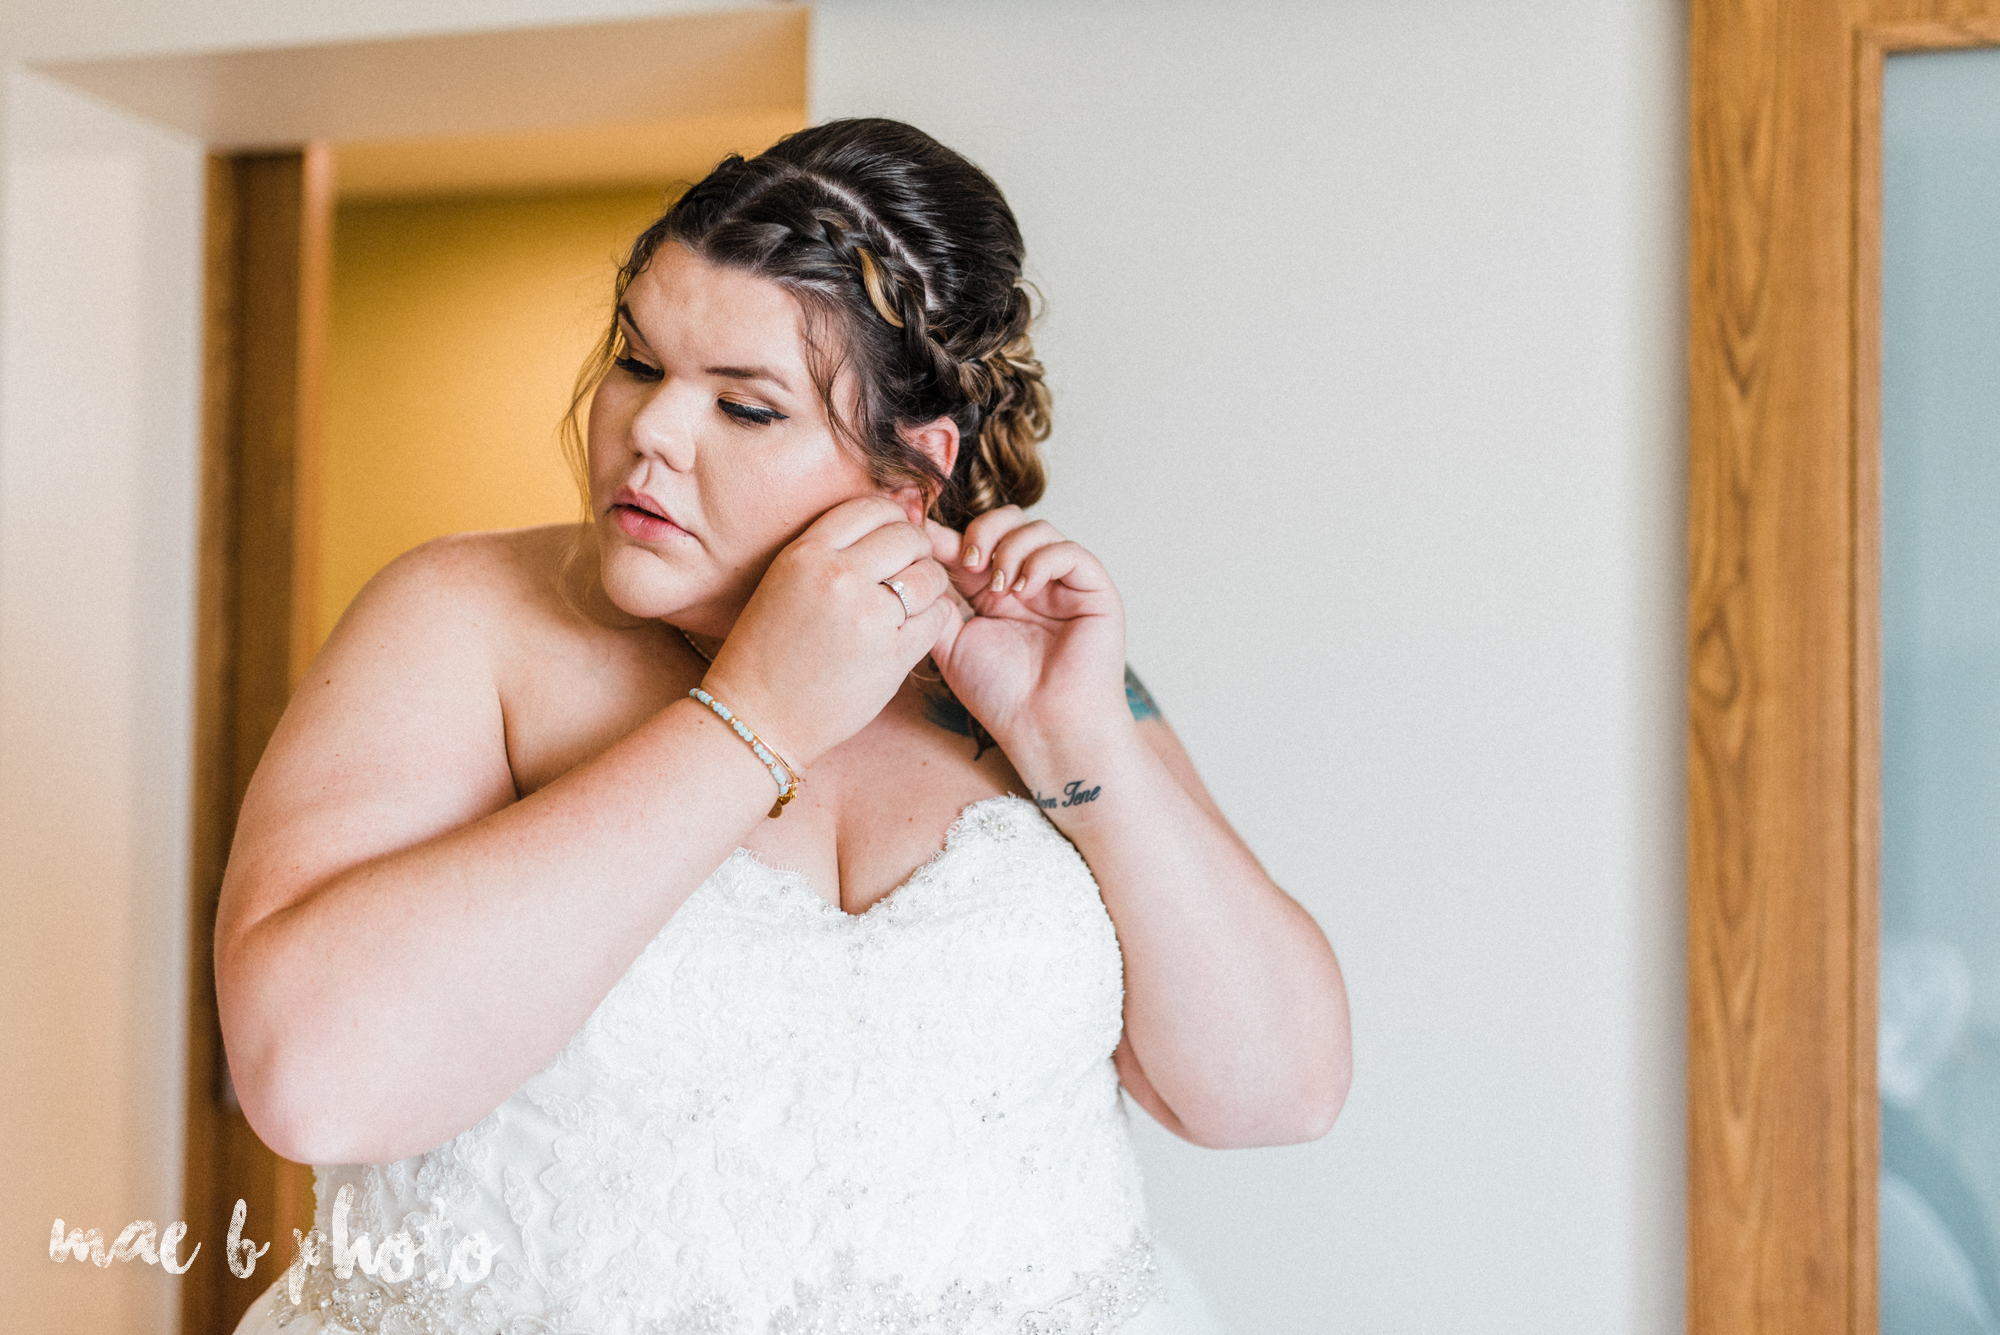 Kristina and ryan's personal vintage glam fall wedding at disalvo's station restaurant and the arnold palmer latrobe country club in latrobe, pa photographed by youngstown wedding photographer mae b photo-15.jpg